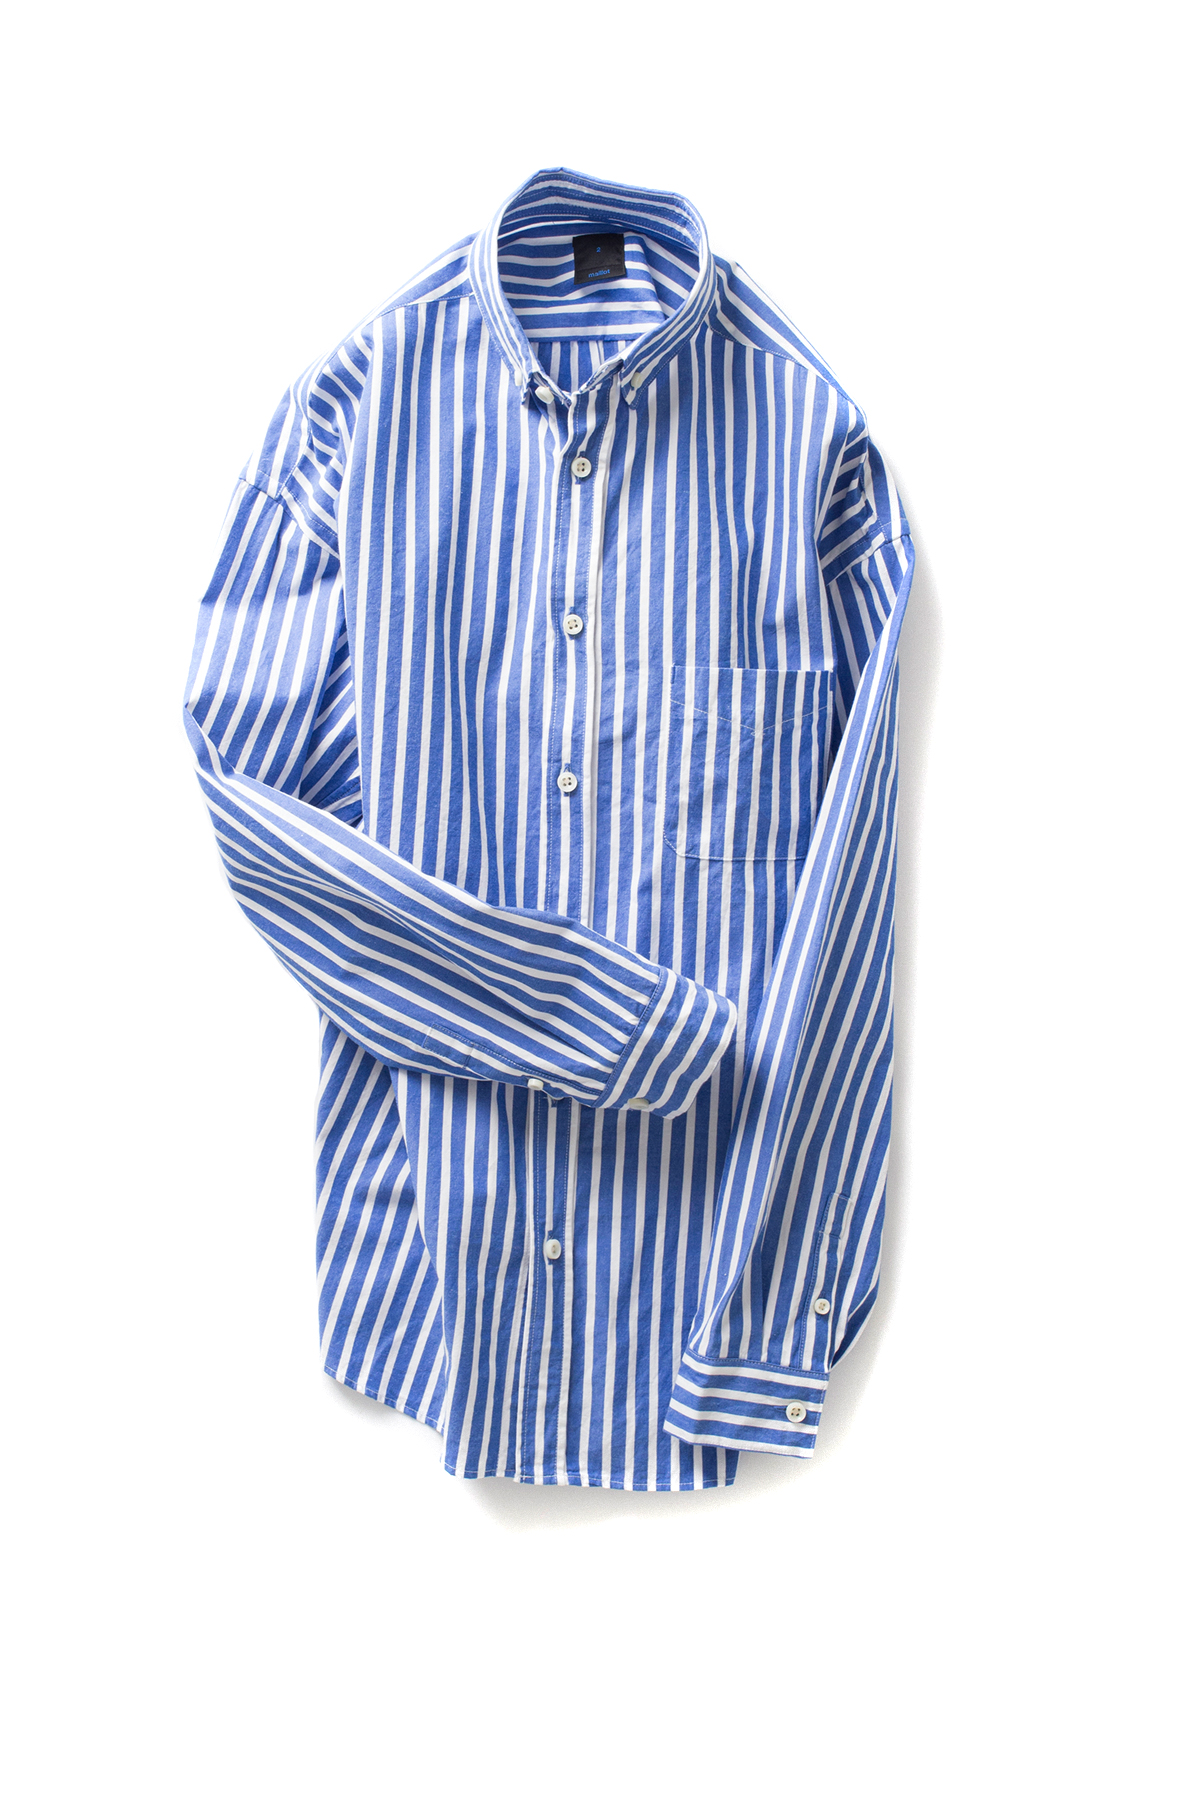 maillot : Stripe BD Shirt (Blue x White)